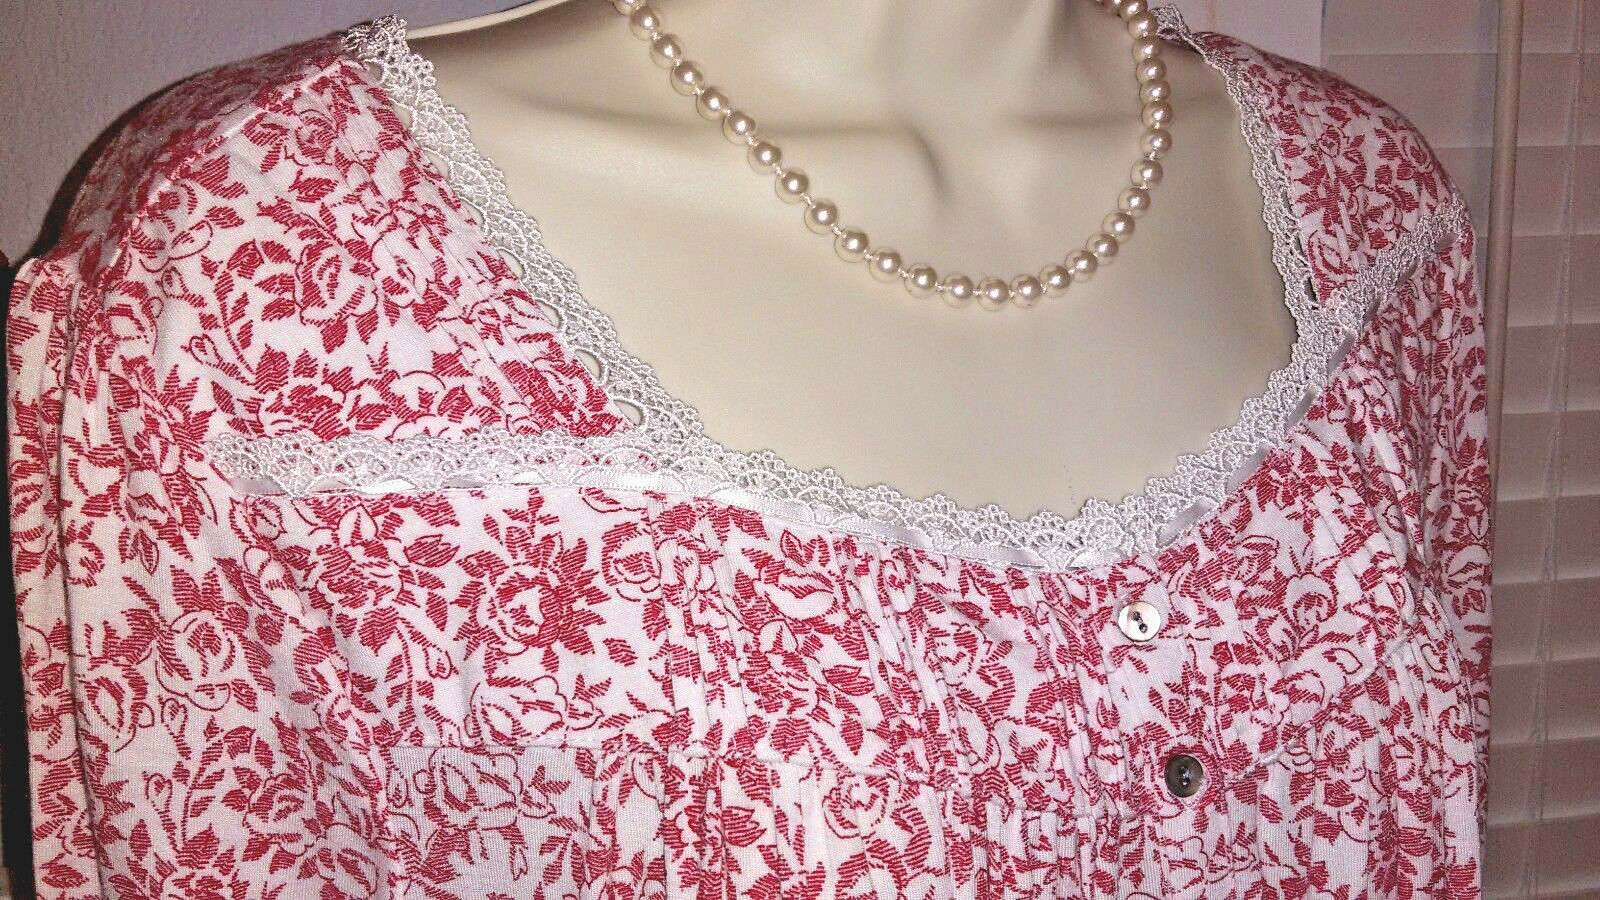 NWT L Large Eileen West Nightgown Modal Knit Gown NEW Red Floral 3 4 Sleeve